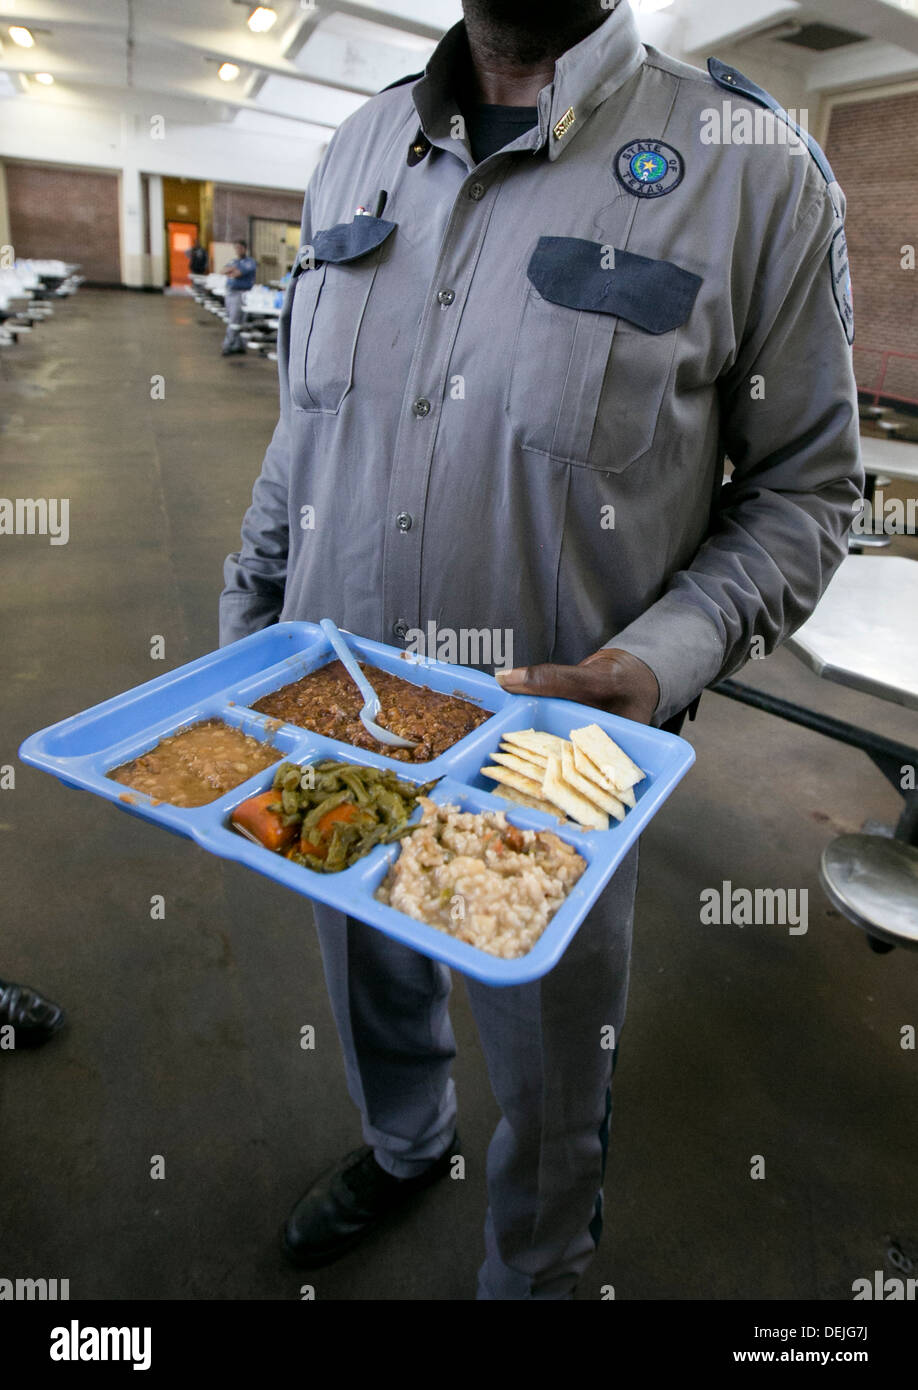 A Prison Security Guard Hold Up A Tray With Food Choice